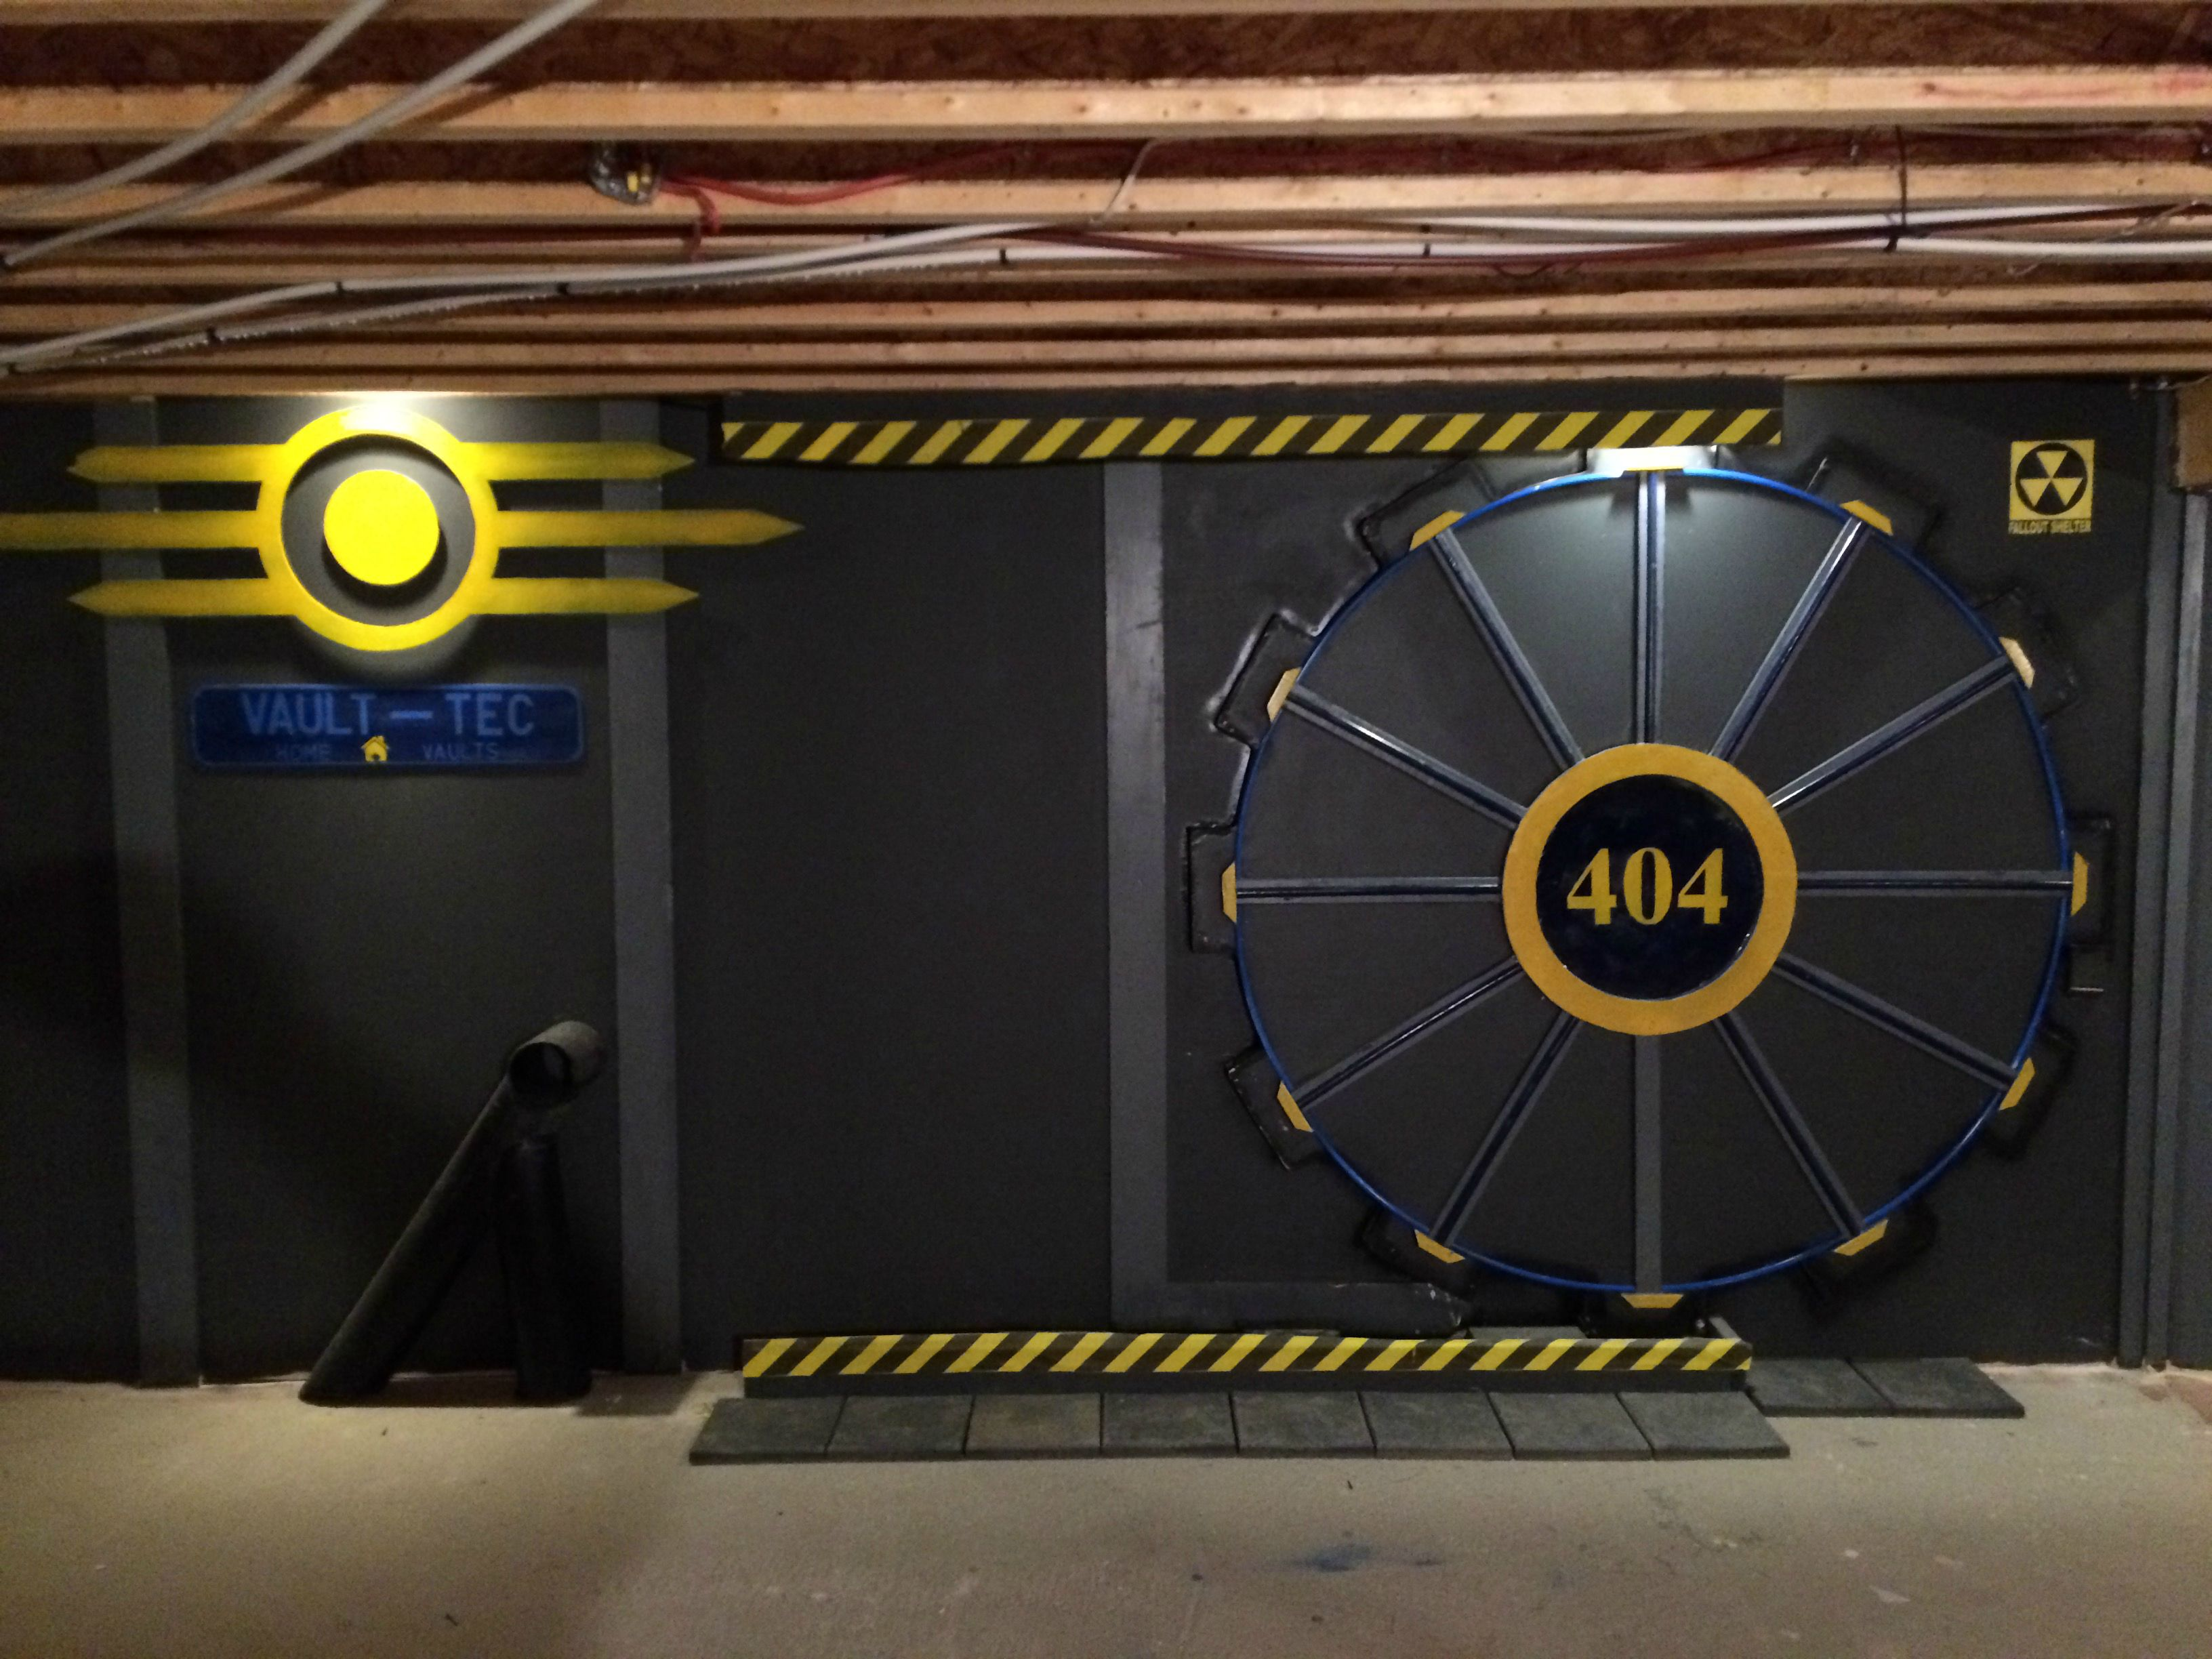 French Fall Wallpaper Fan Builds Real Life Fallout Vault Door For Gaming Room